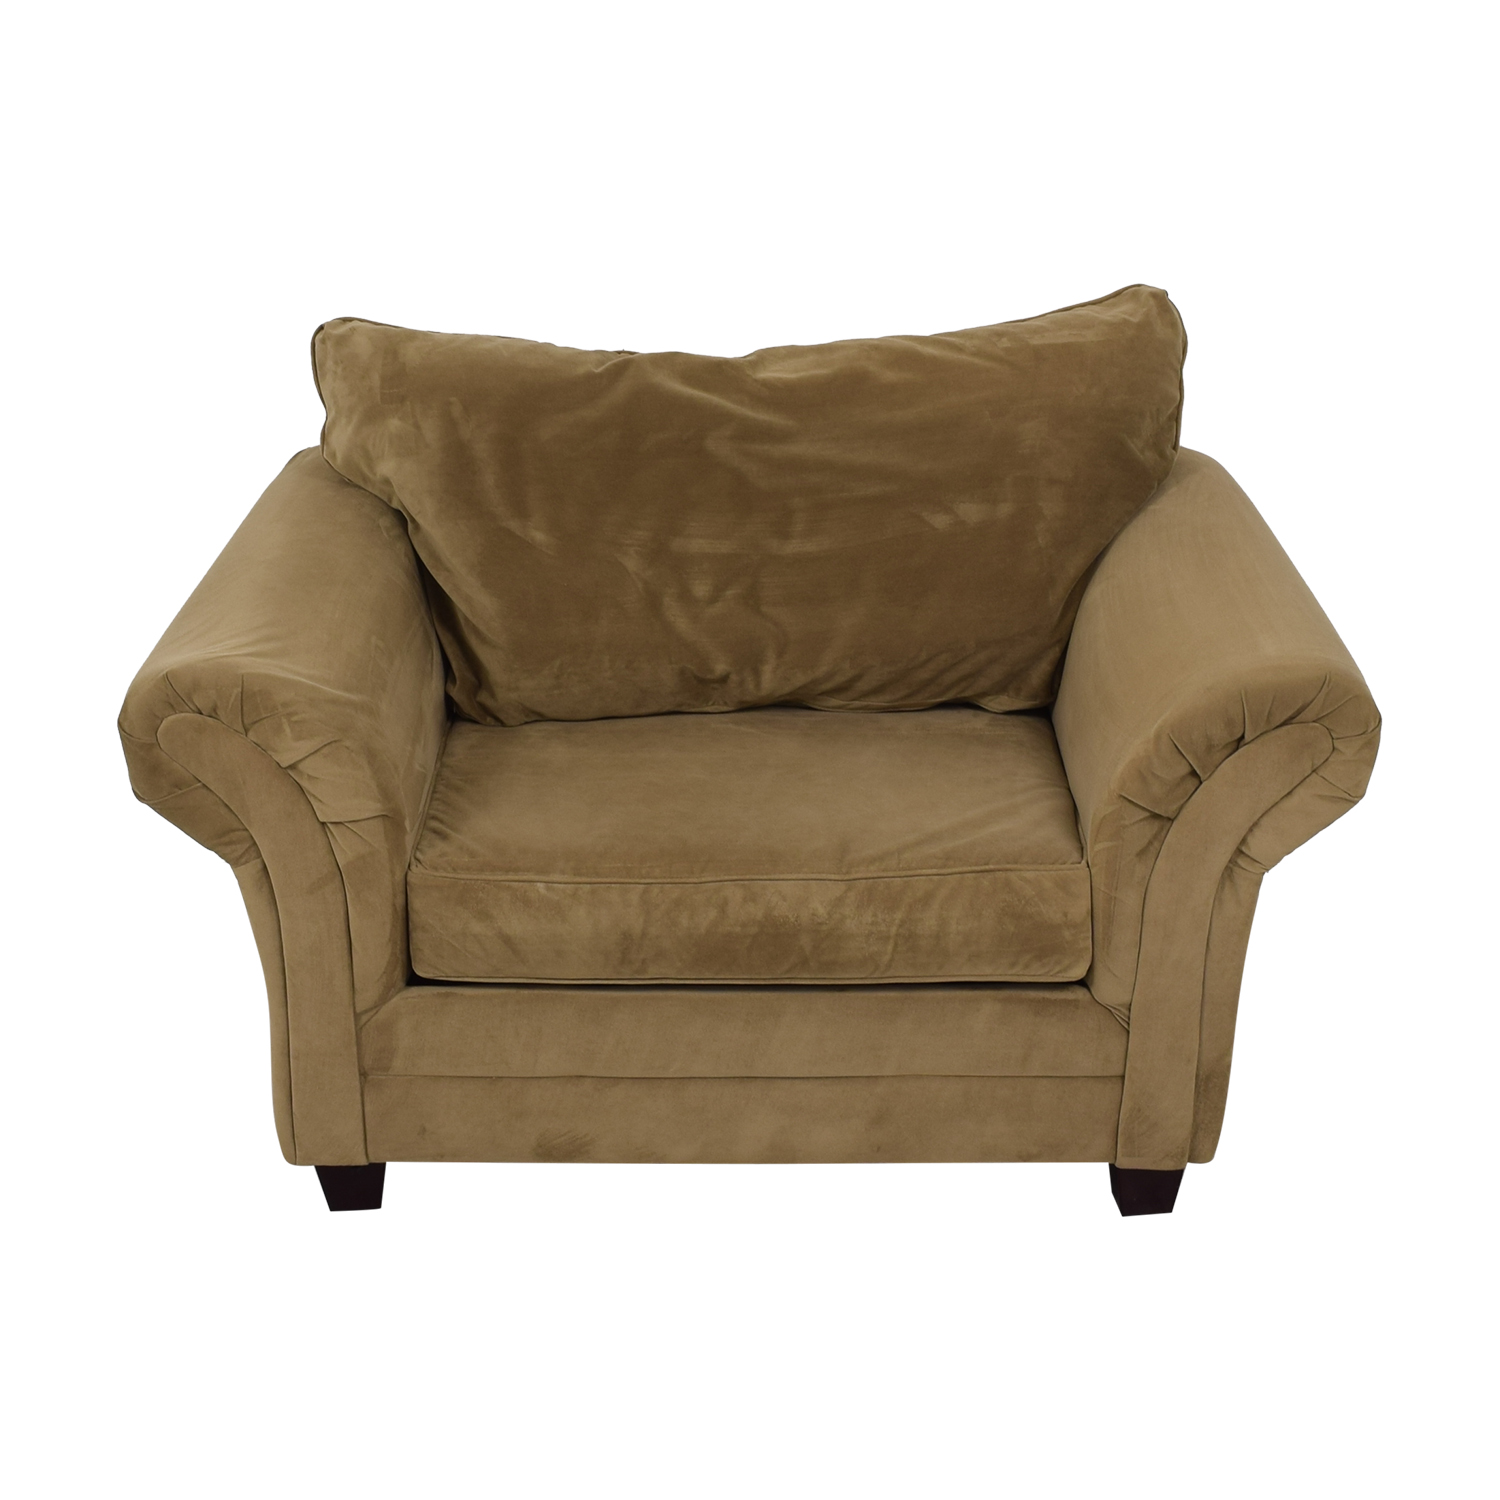 Bob's Discount Furniture Bob's Discount Furniture Bella Tan Accent Chair price